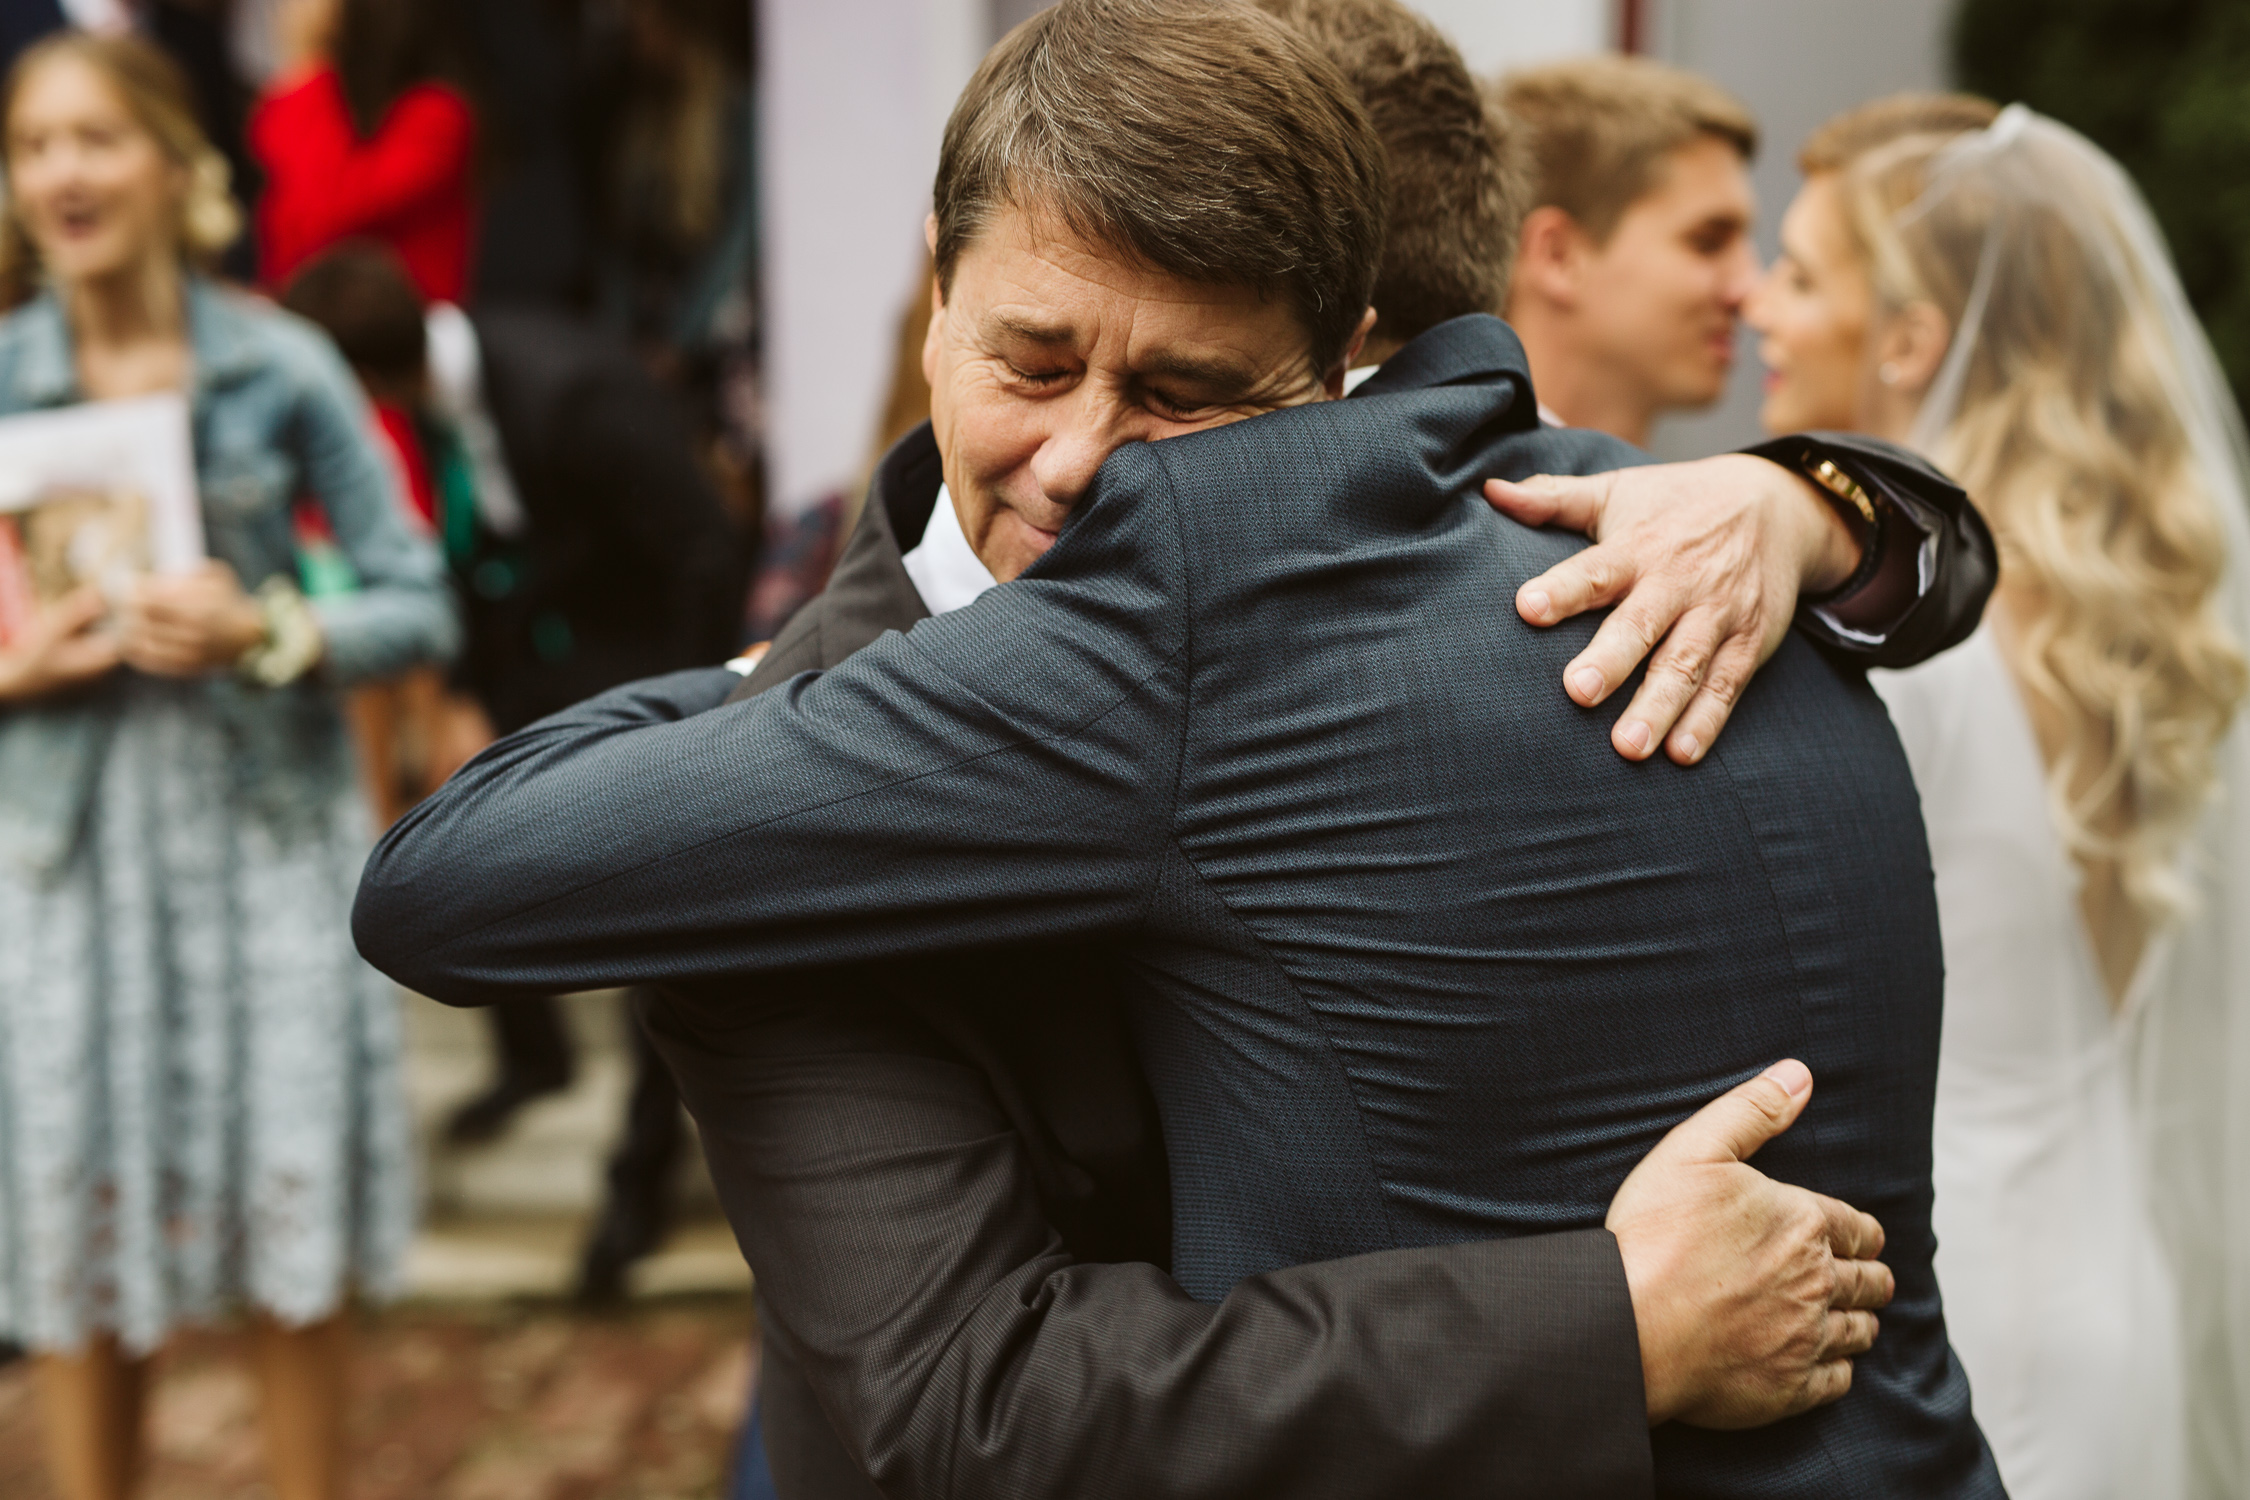 son hugging his father in front of church